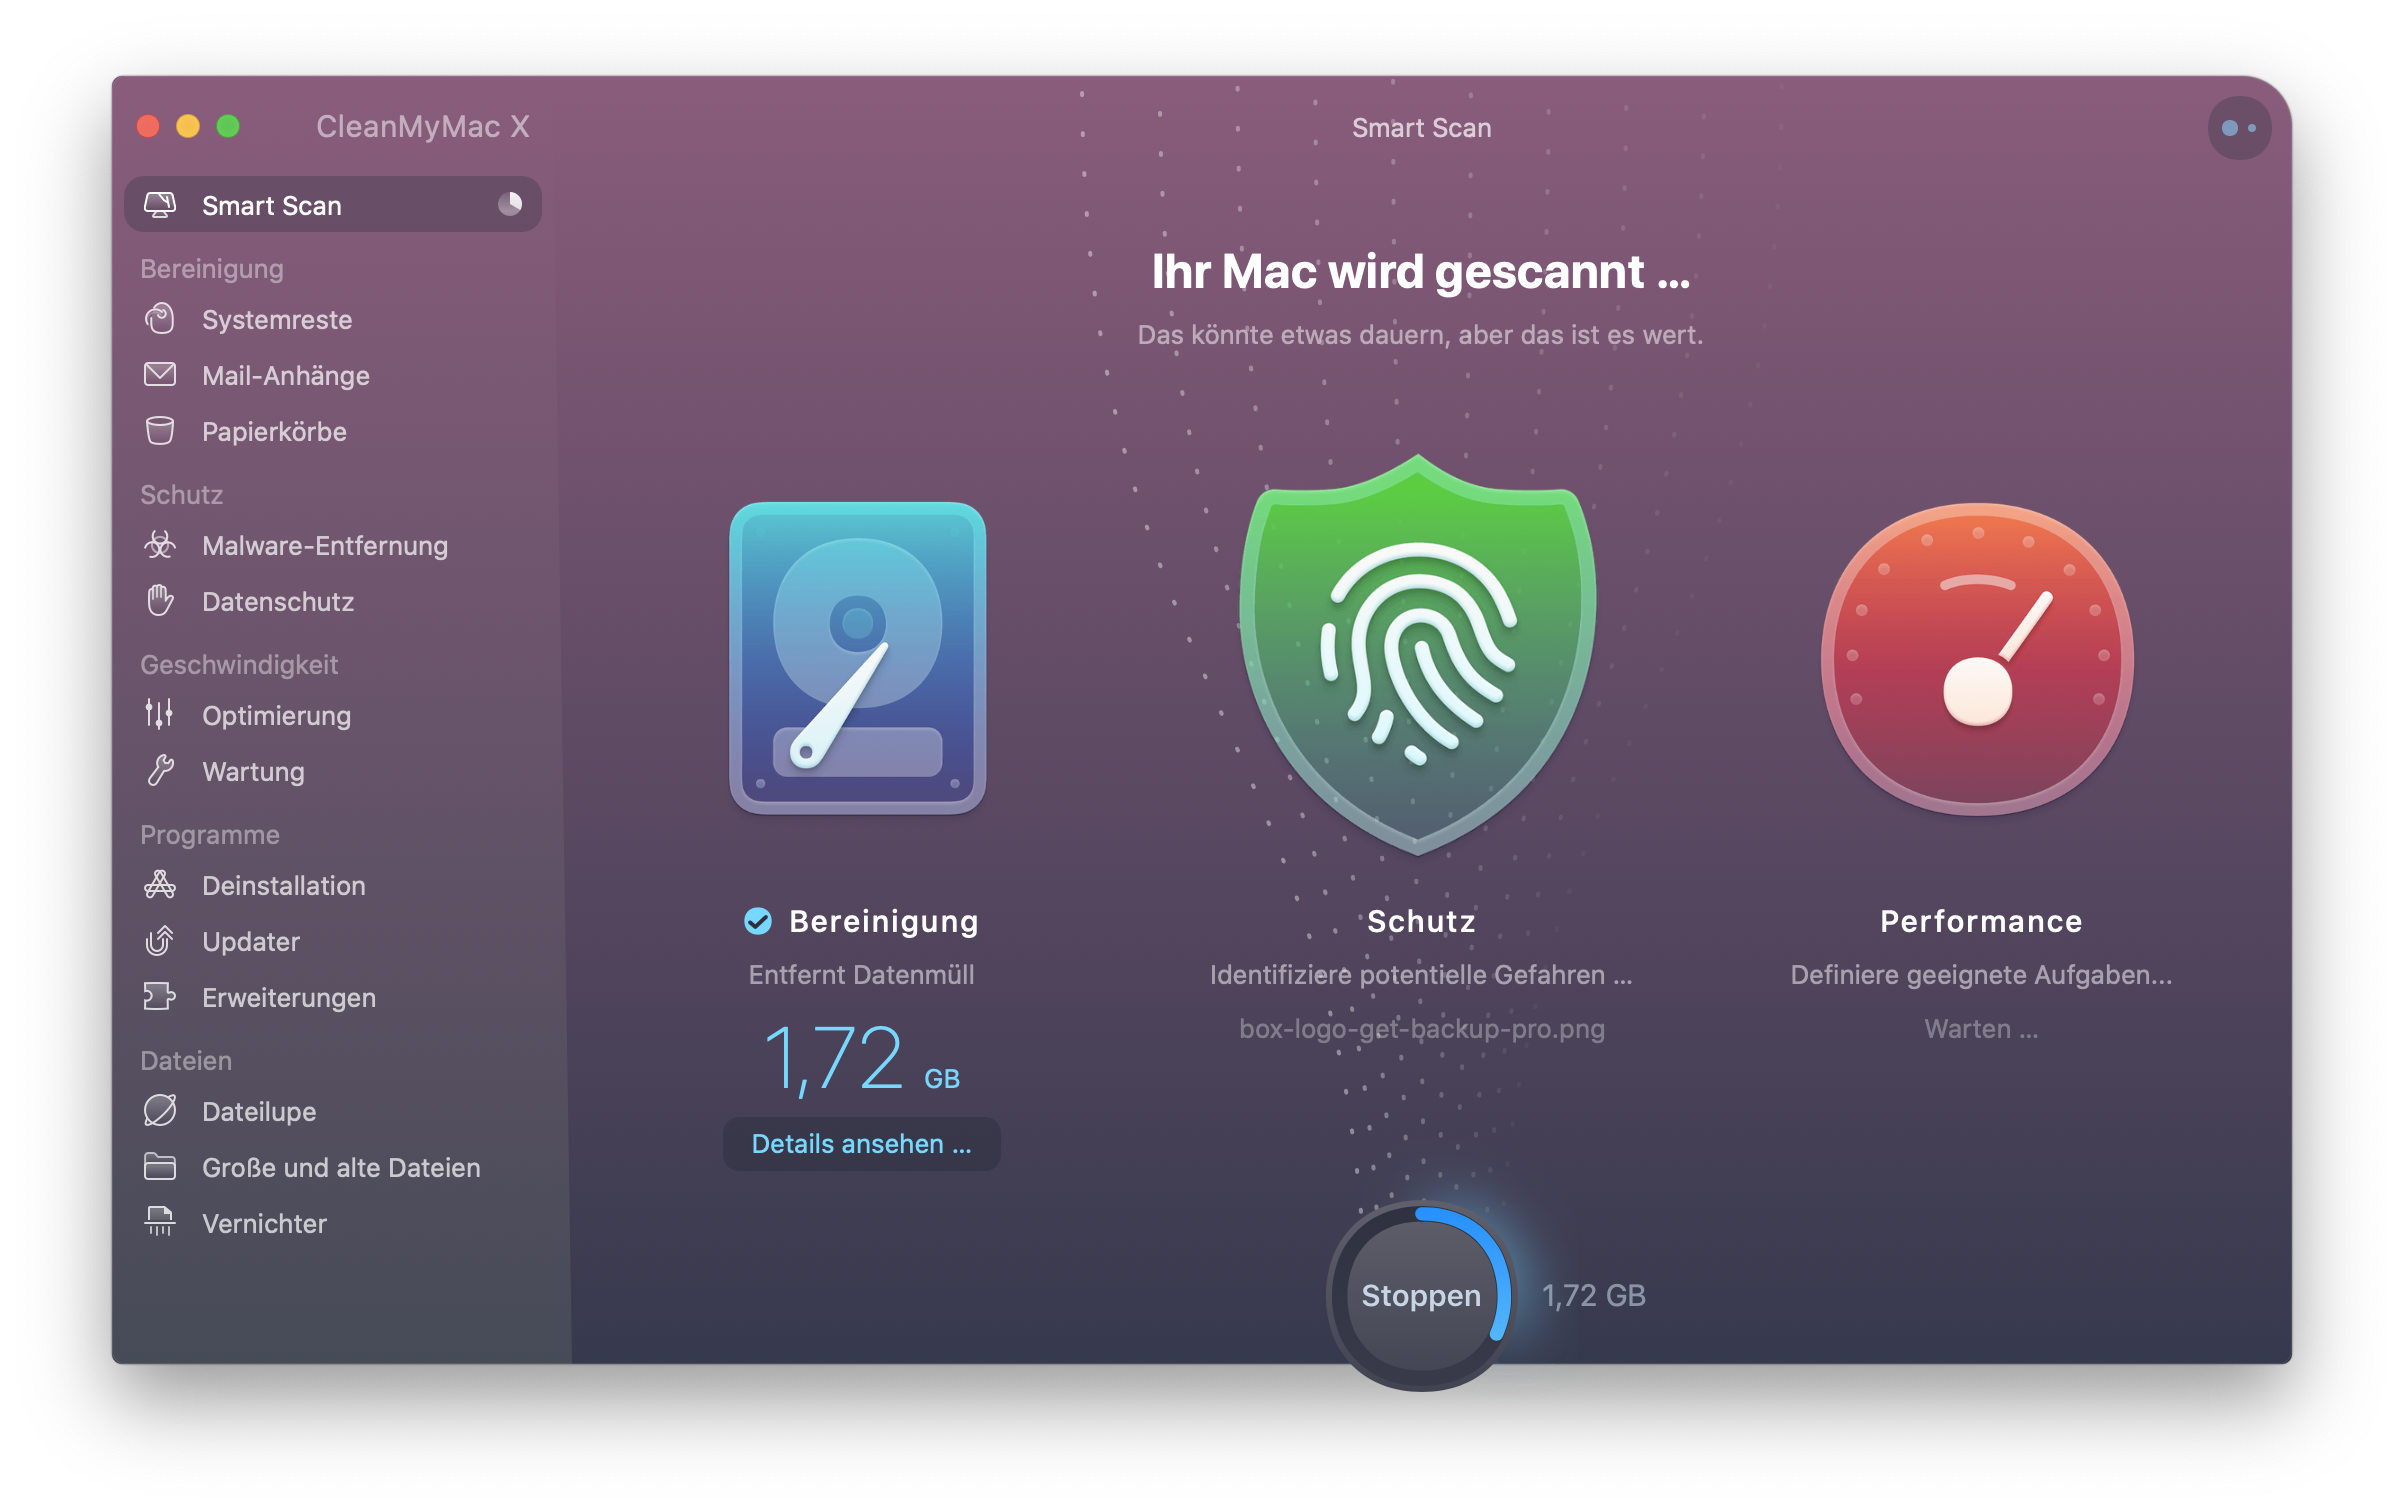 Smart Scan von CleanMyMac X